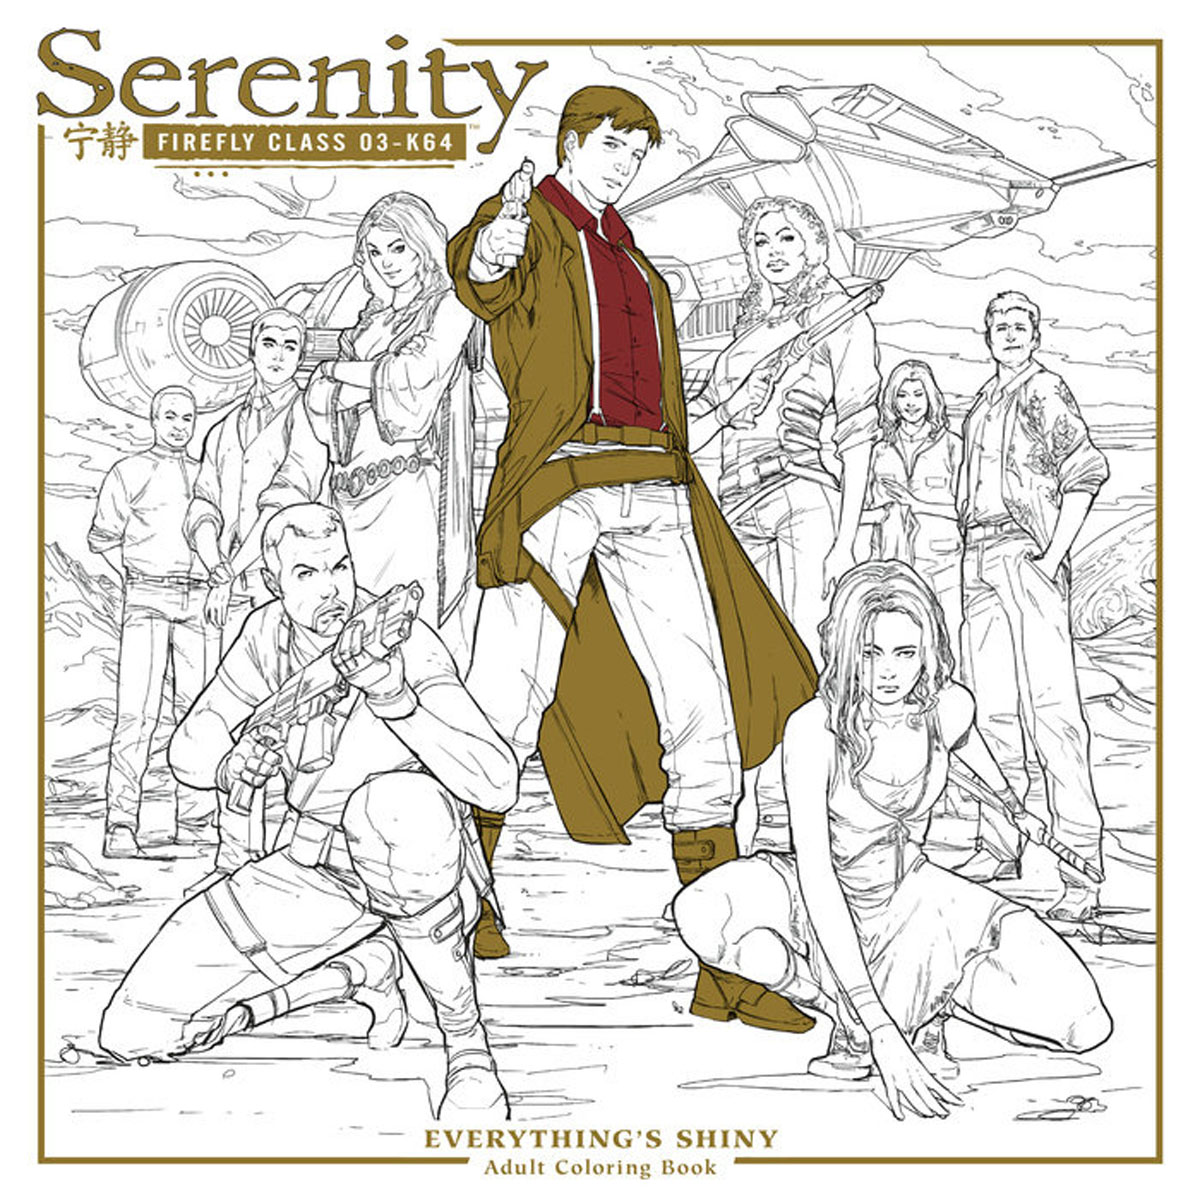 Serenity: Everything's Shiny Adult Coloring Book coloring of trees